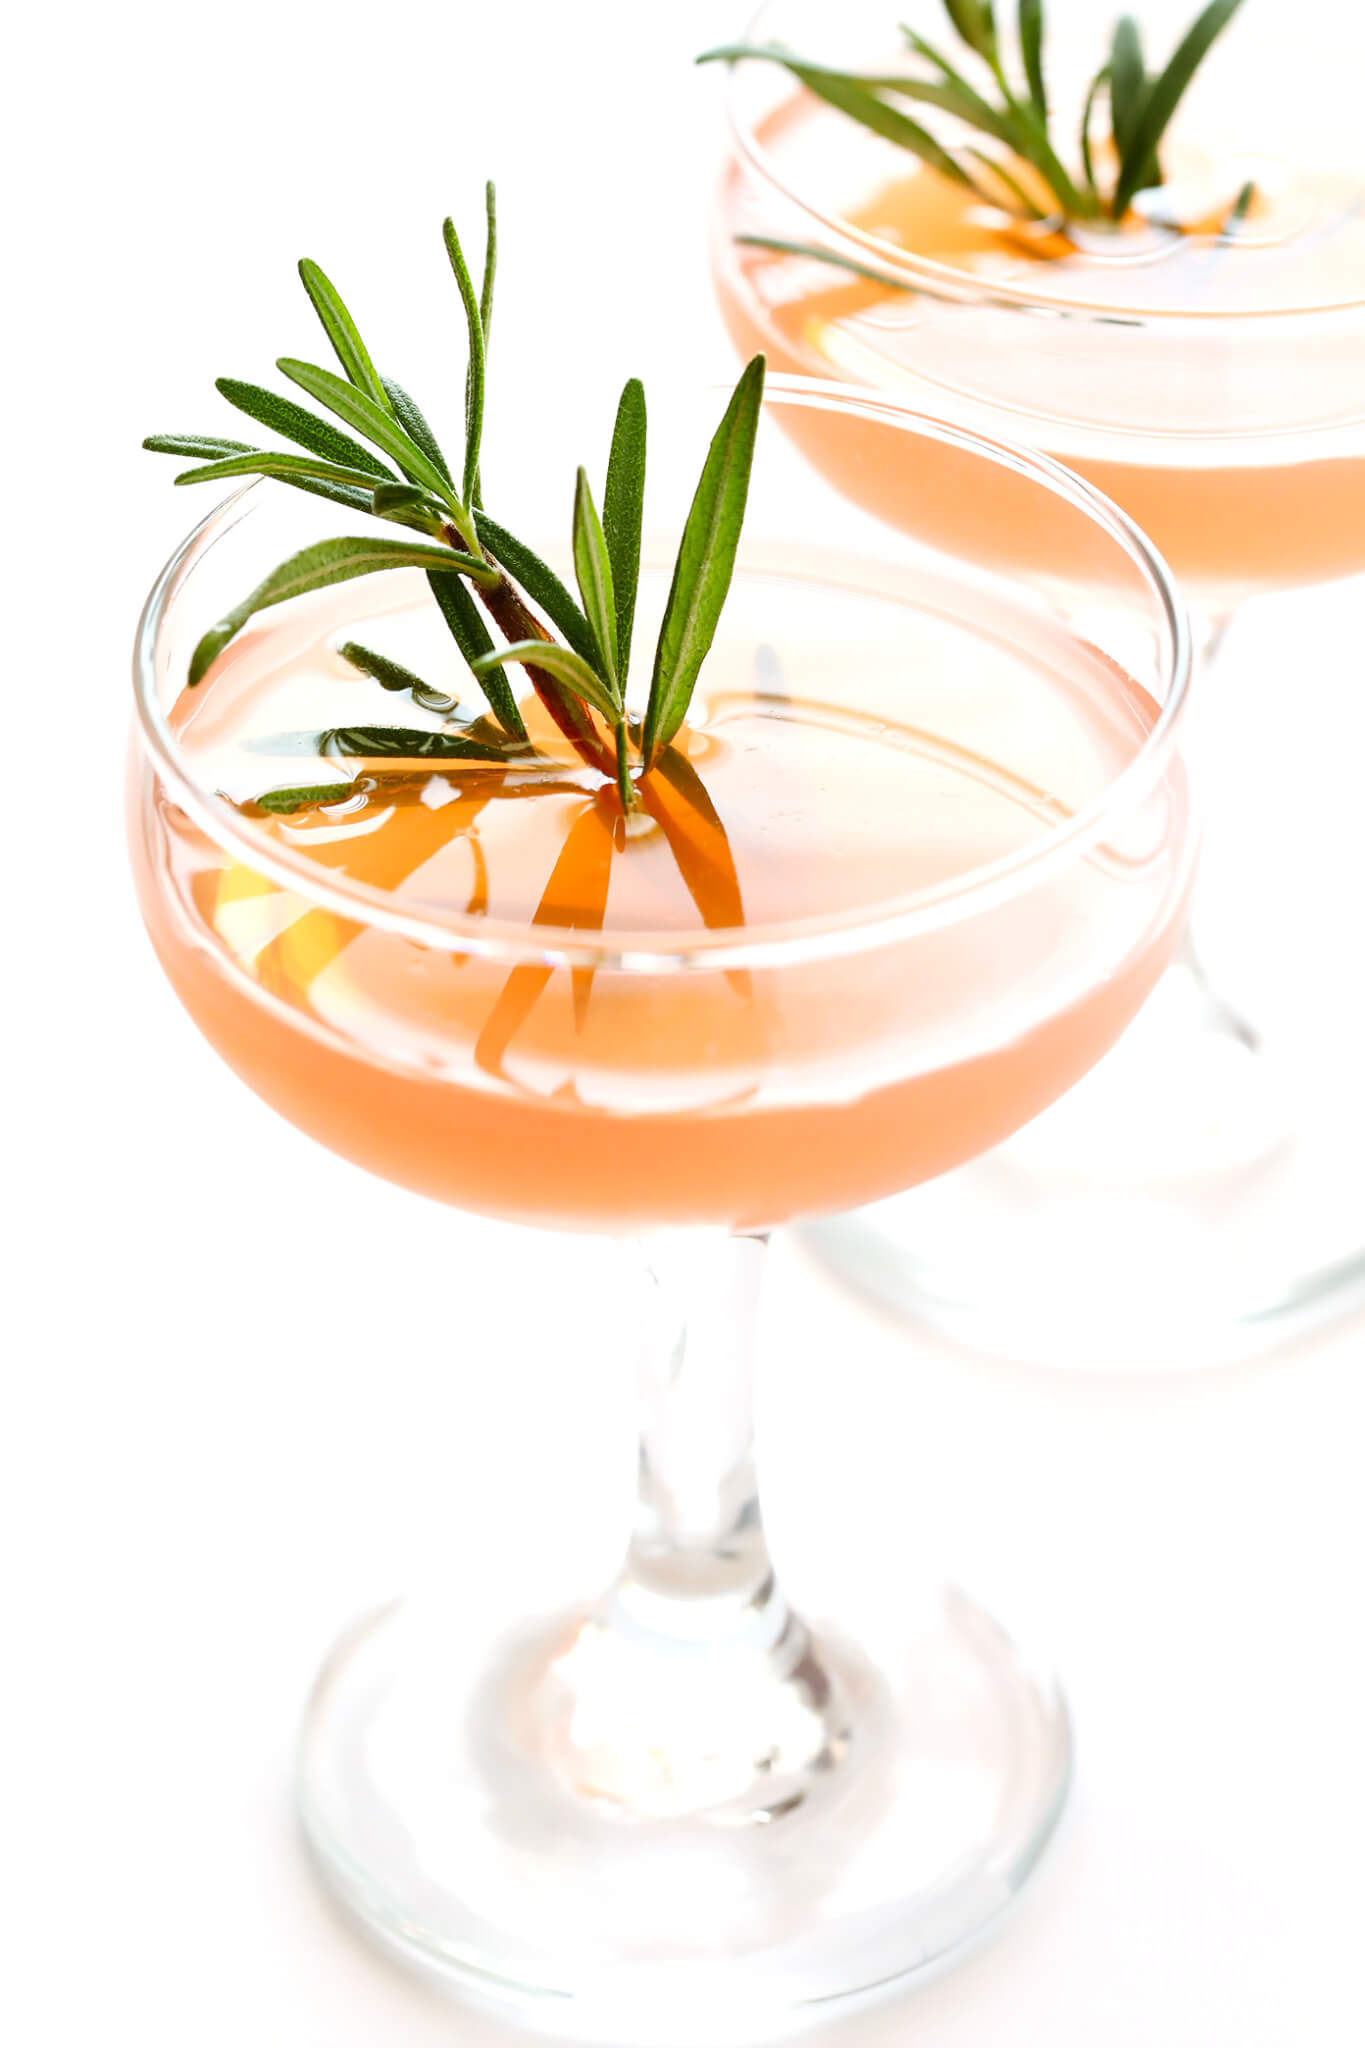 """These refreshing 30-second cocktails are quick and easy to make, they're made with gin (or vodka), St. Germain (elderflower liqueur) and grapefruit juice, and garnished with a sprig of fresh rosemary. They are classically known as the """"Frenchie"""" or """"Frenchy"""" cocktail -- so delicious!"""